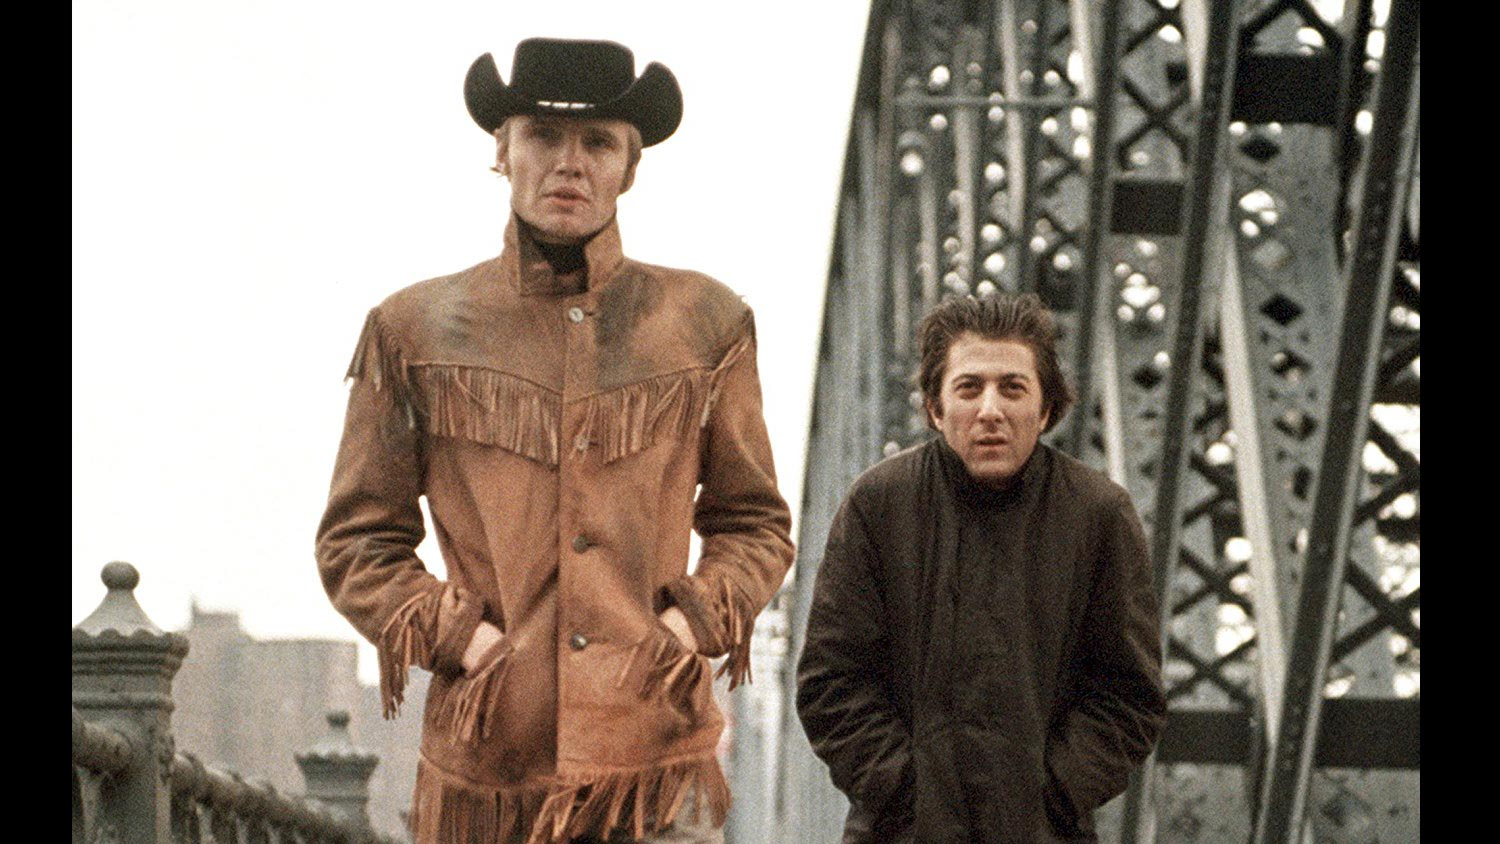 Midnight Cowboy Blu-Ray Review – I'm Walkin' Here! - OC Movie Reviews - Movie Reviews, Movie News, Documentary Reviews, Short Films, Short Film Reviews, Trailers, Movie Trailers, Interviews, film reviews, film news, hollywood, indie films, documentaries